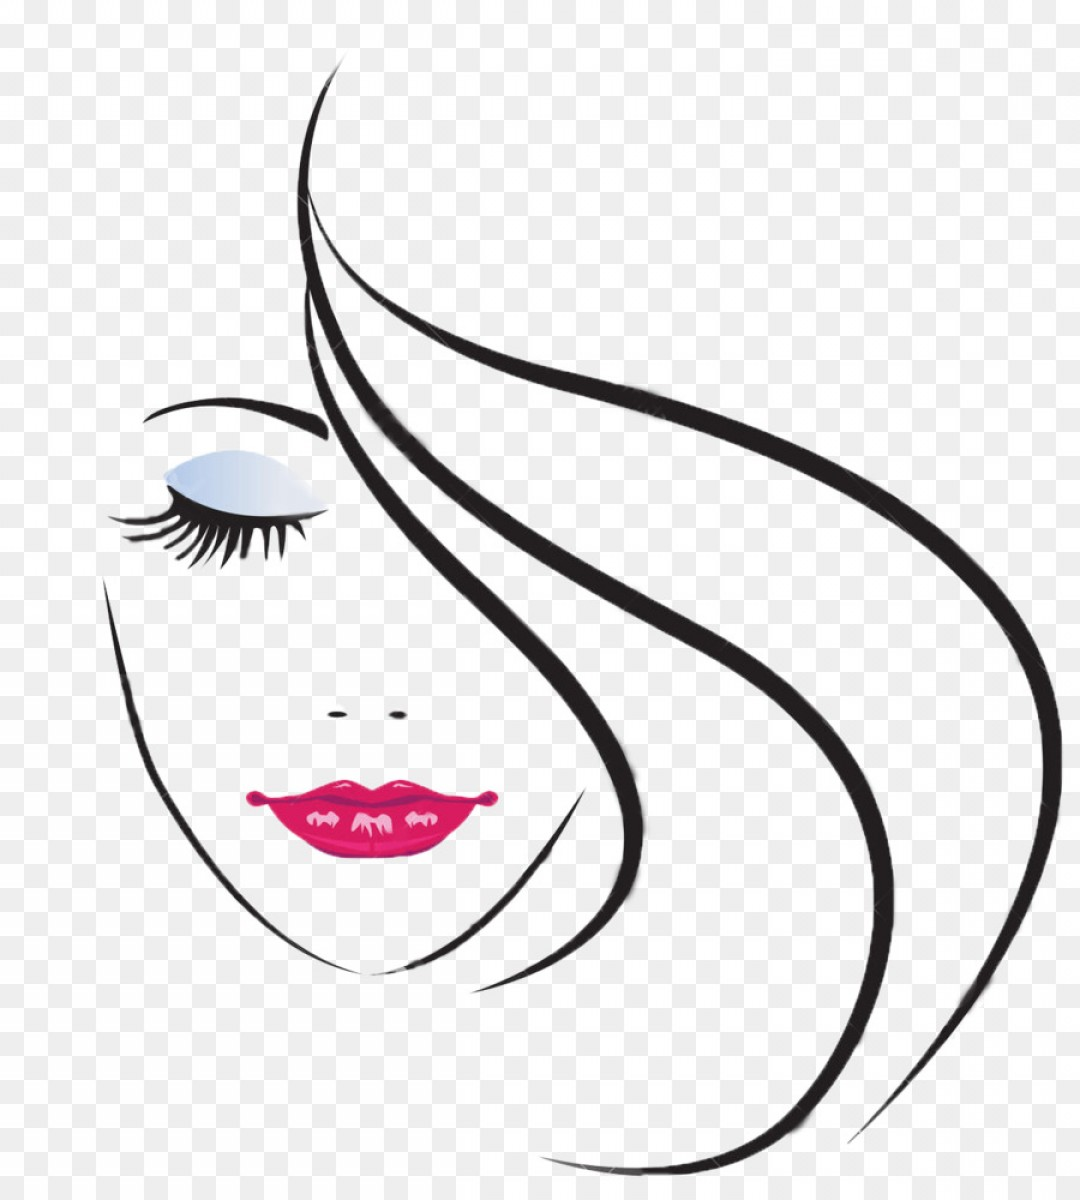 Png Clip Art Cosmetics Openclipart Beauty Vector Graph.